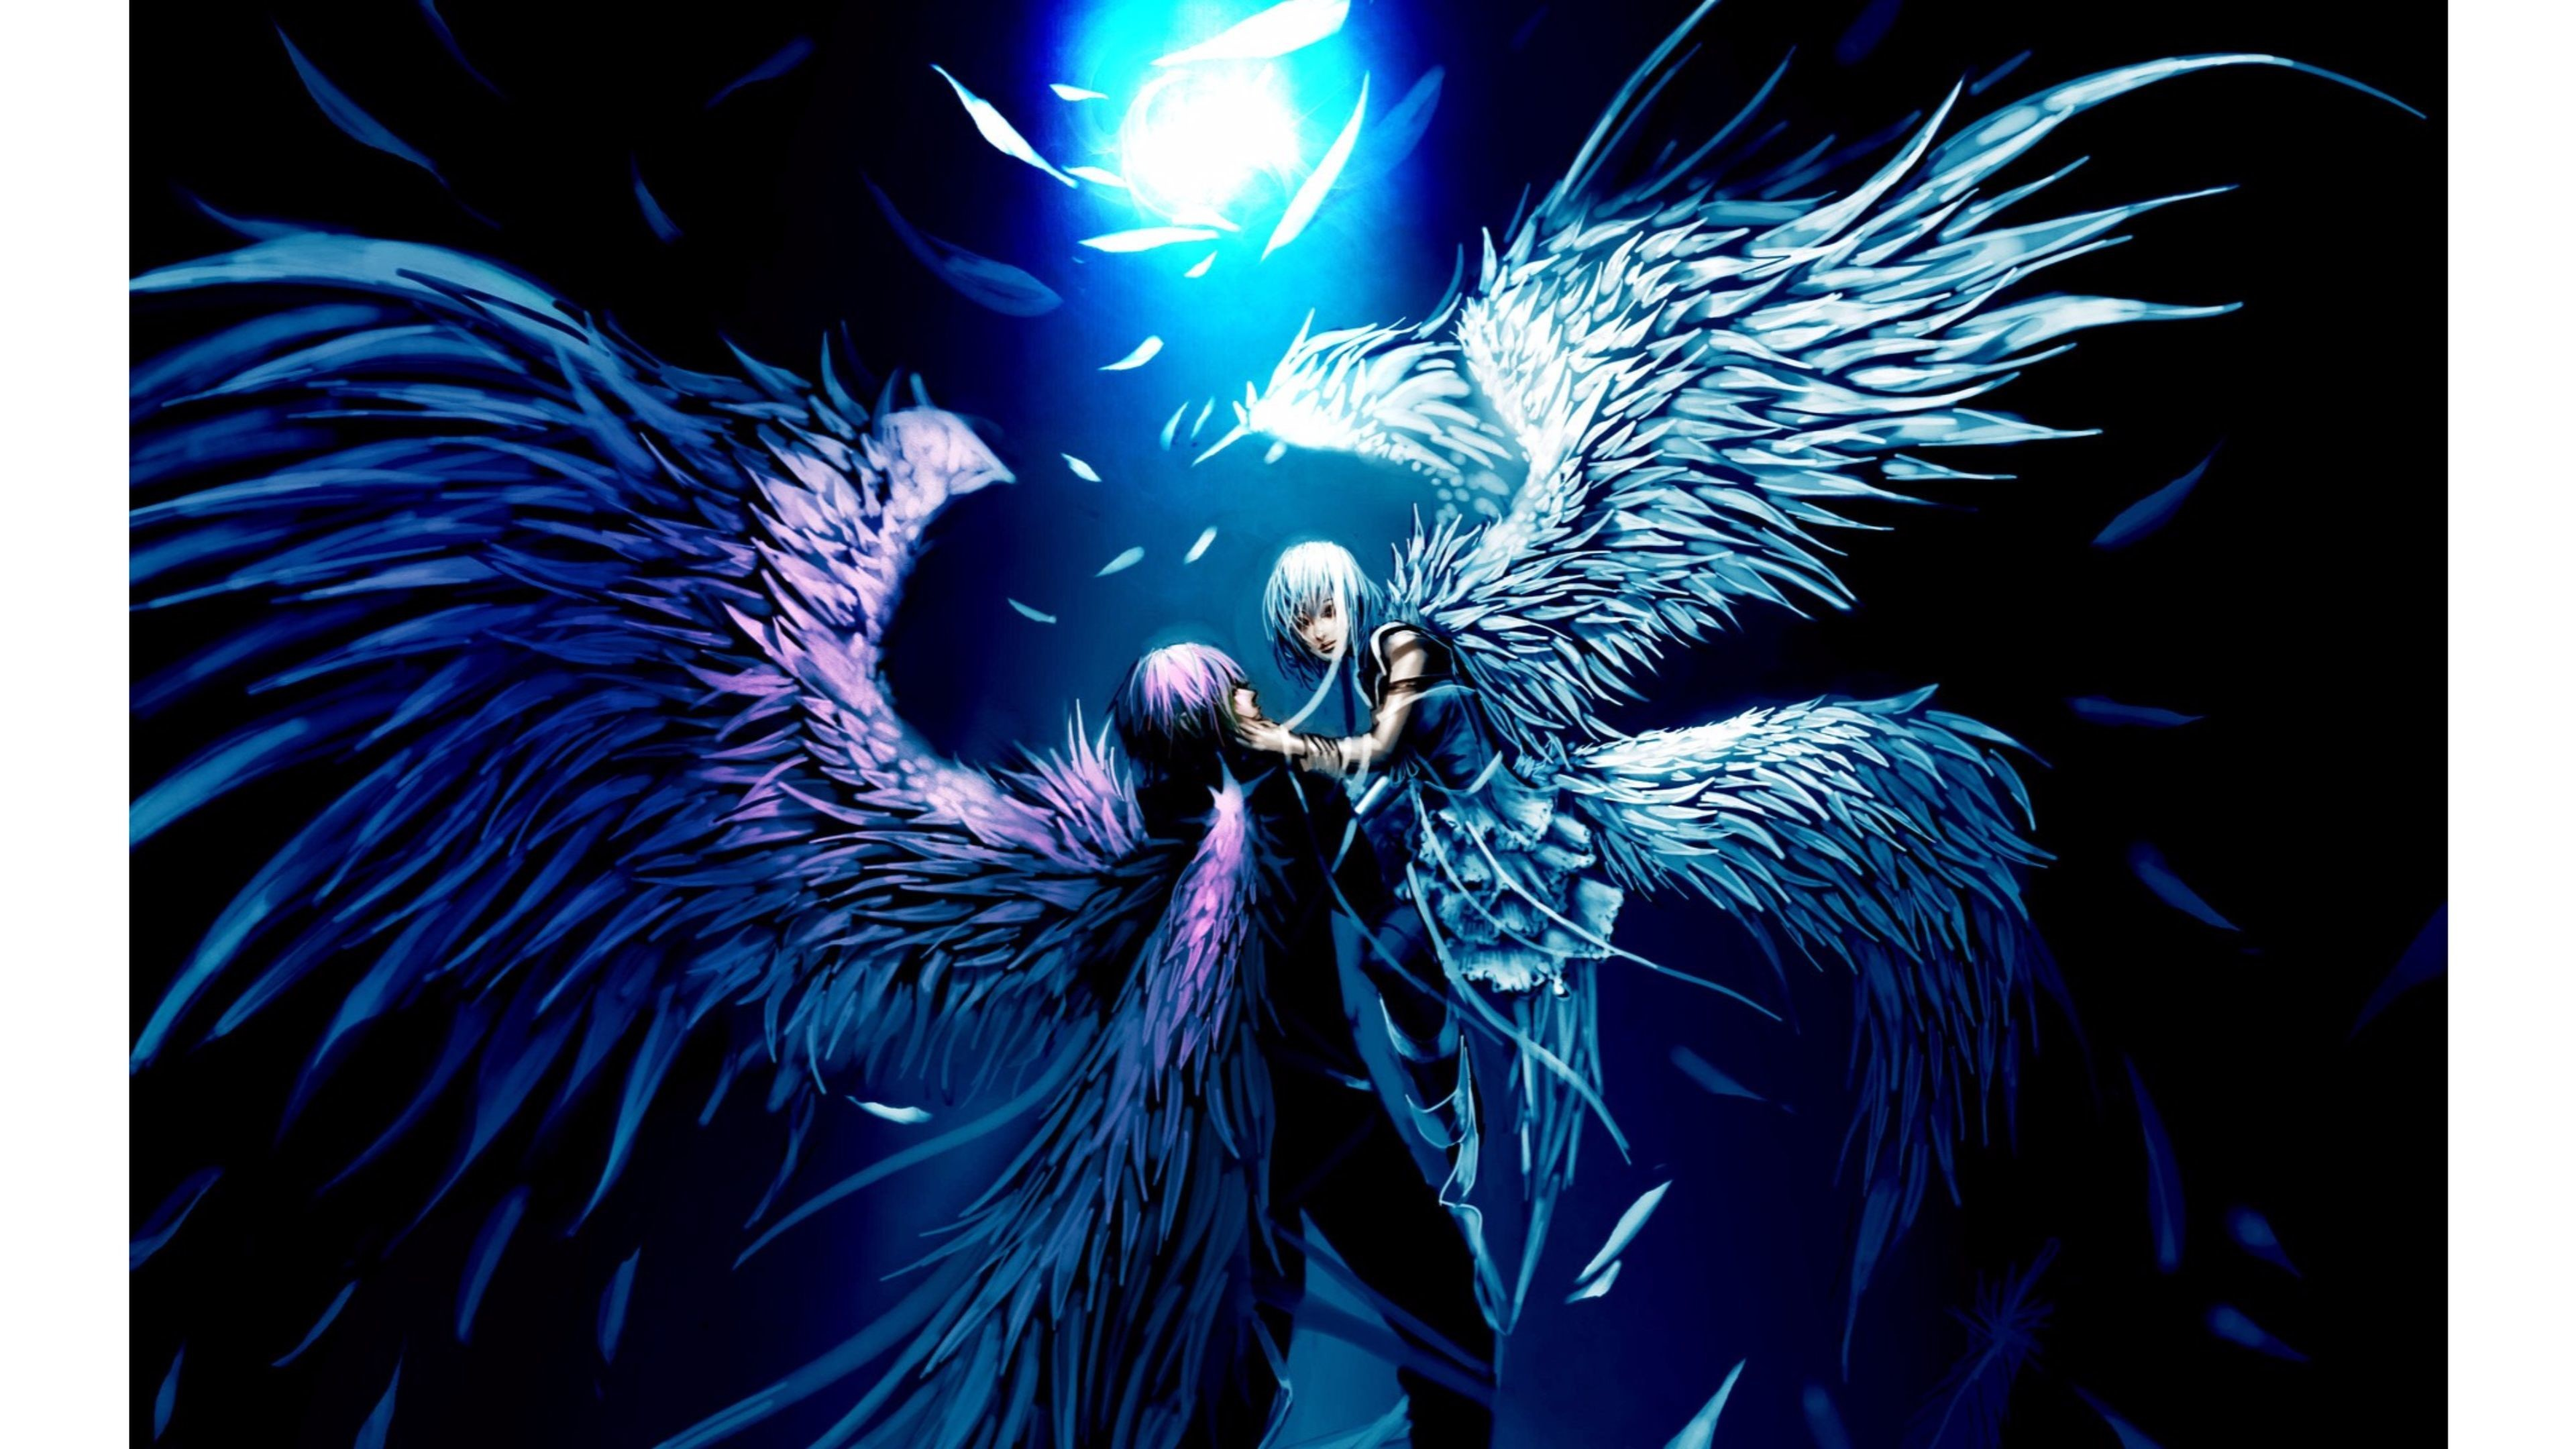 Dark Angel Anime Wallpaper Posted By Christopher Tremblay